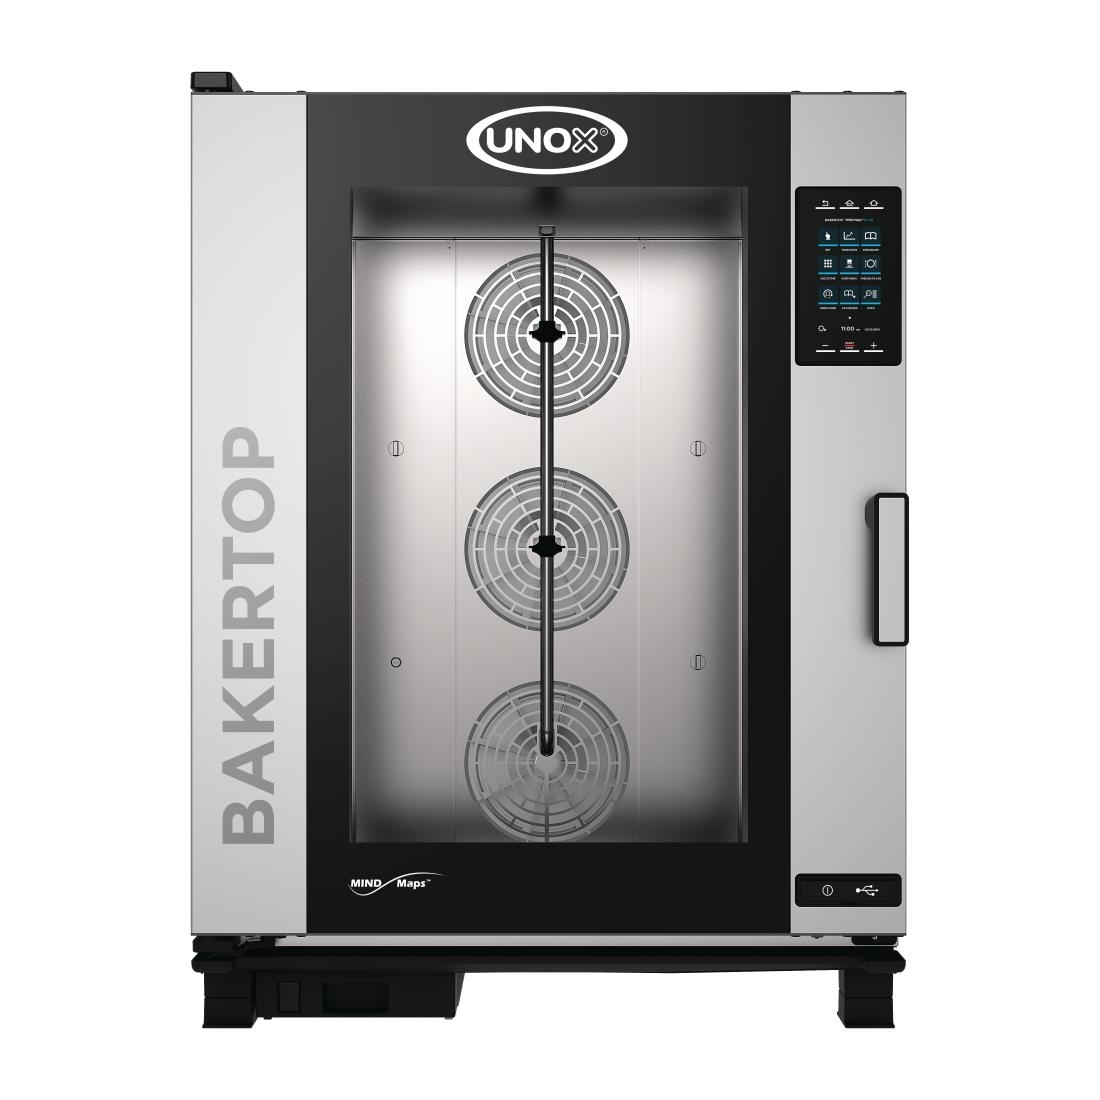 Unox BAKERTOP MIND Maps Plus 10x 600x400 Electric combi with Install (DT397-IN)